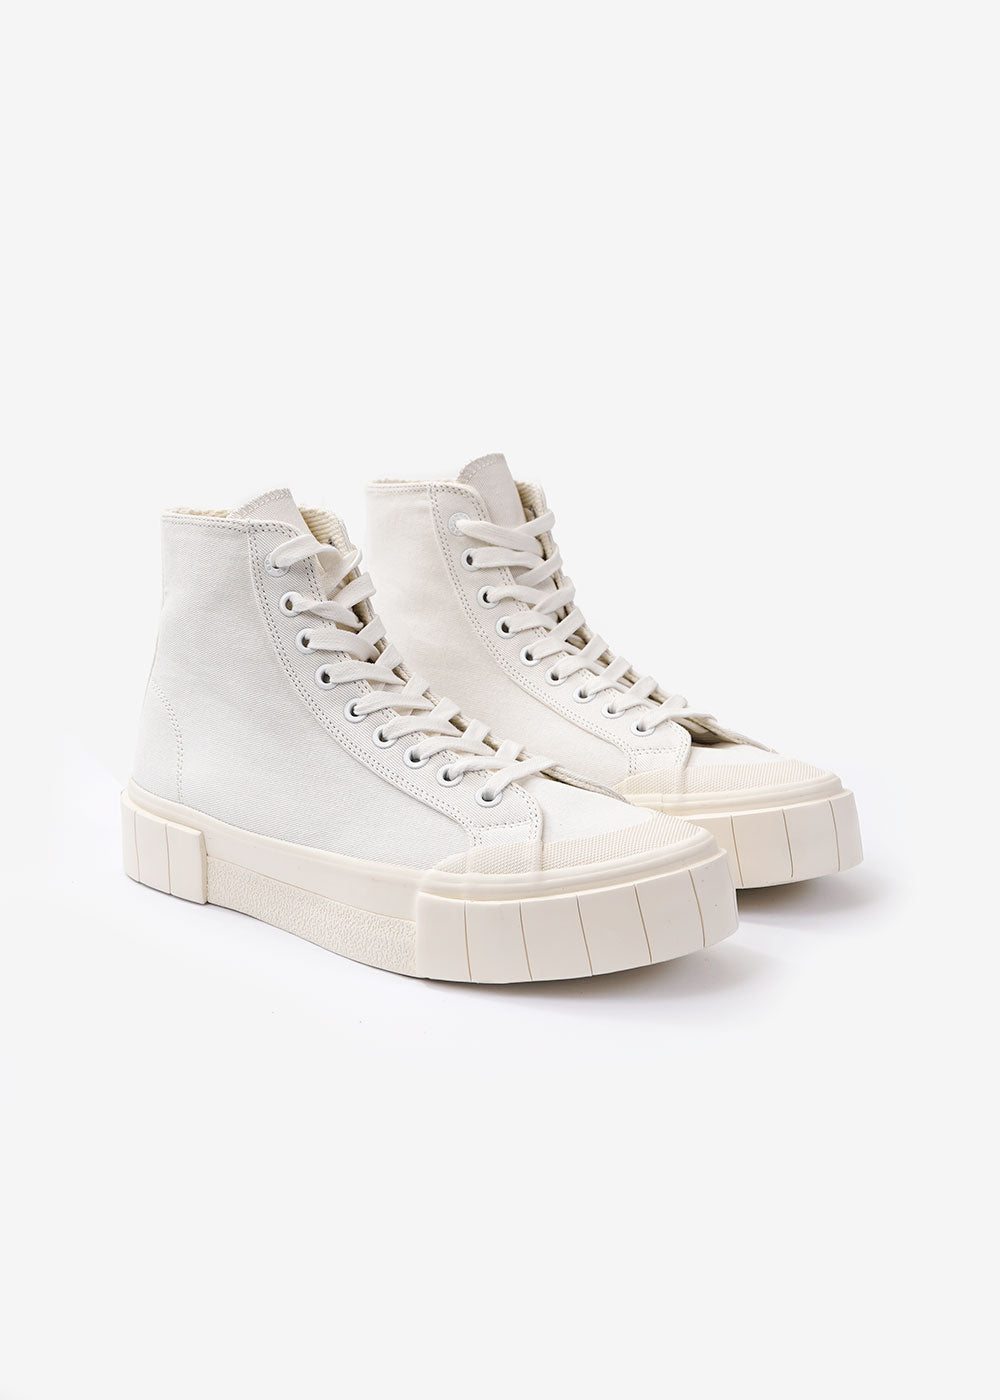 Off-White Bagger 2 Hi Sneakers